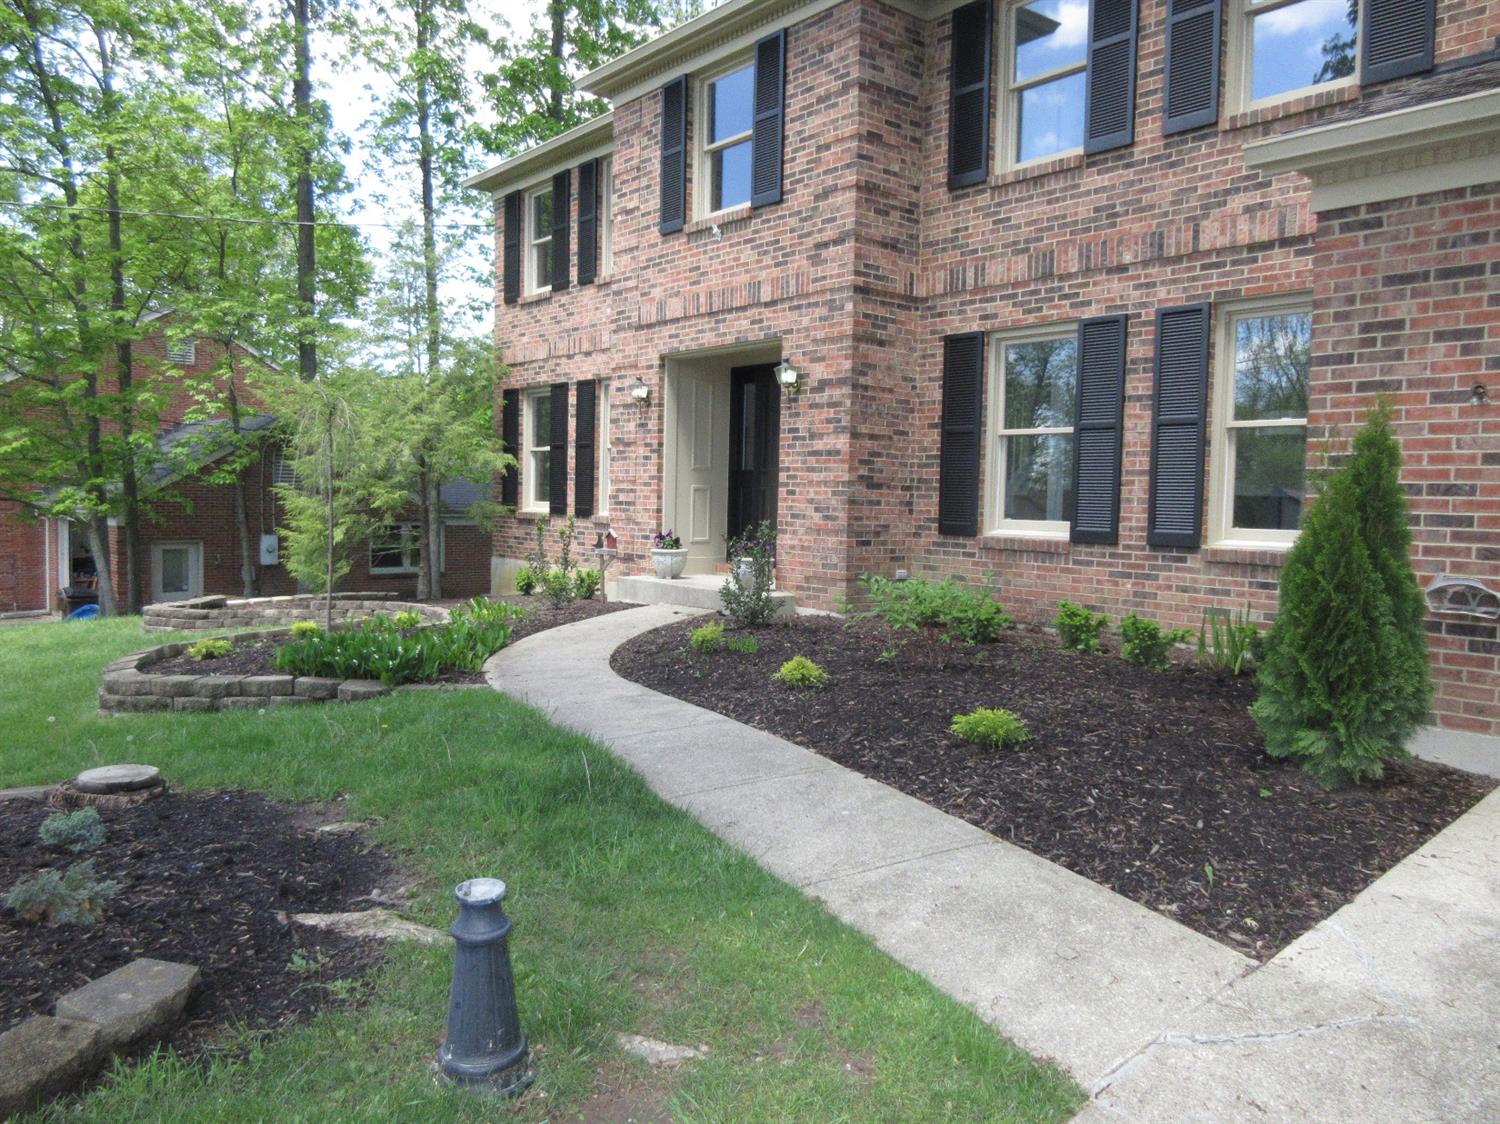 Photo 2 for 7606 Windy Knoll Dr West Chester - East, OH 45241